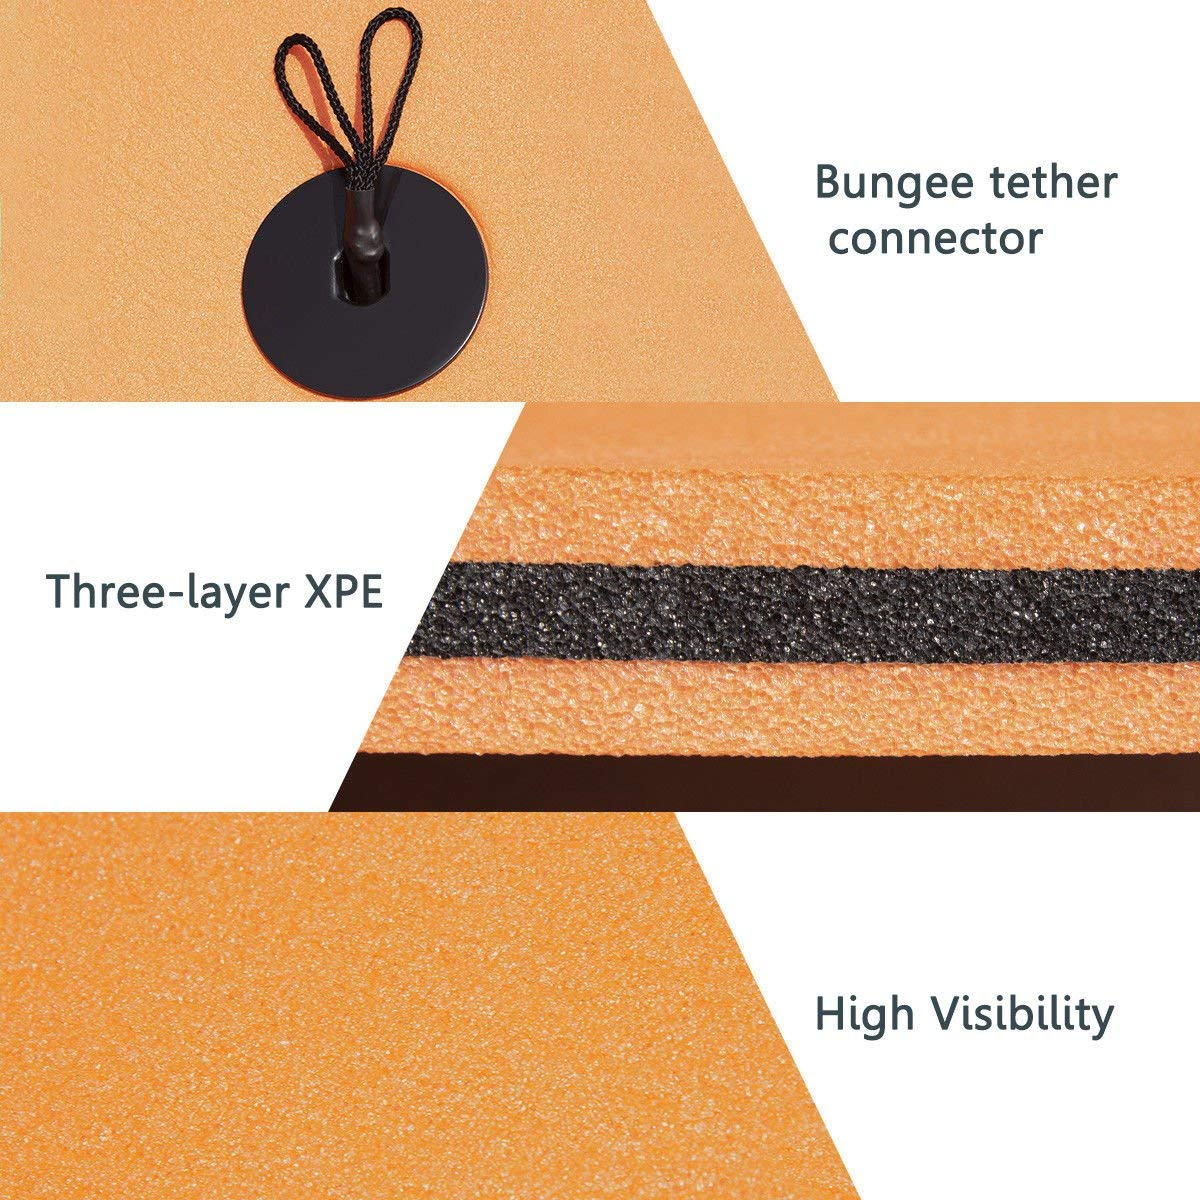 Goplus 12' x 6' Floating Water Pad for Lakes 3 Layer Floating Foam Mat Aqua Buoyancy Pad Designed for Water Recreation and Relaxing (Orange + Black) by Goplus (Image #7)